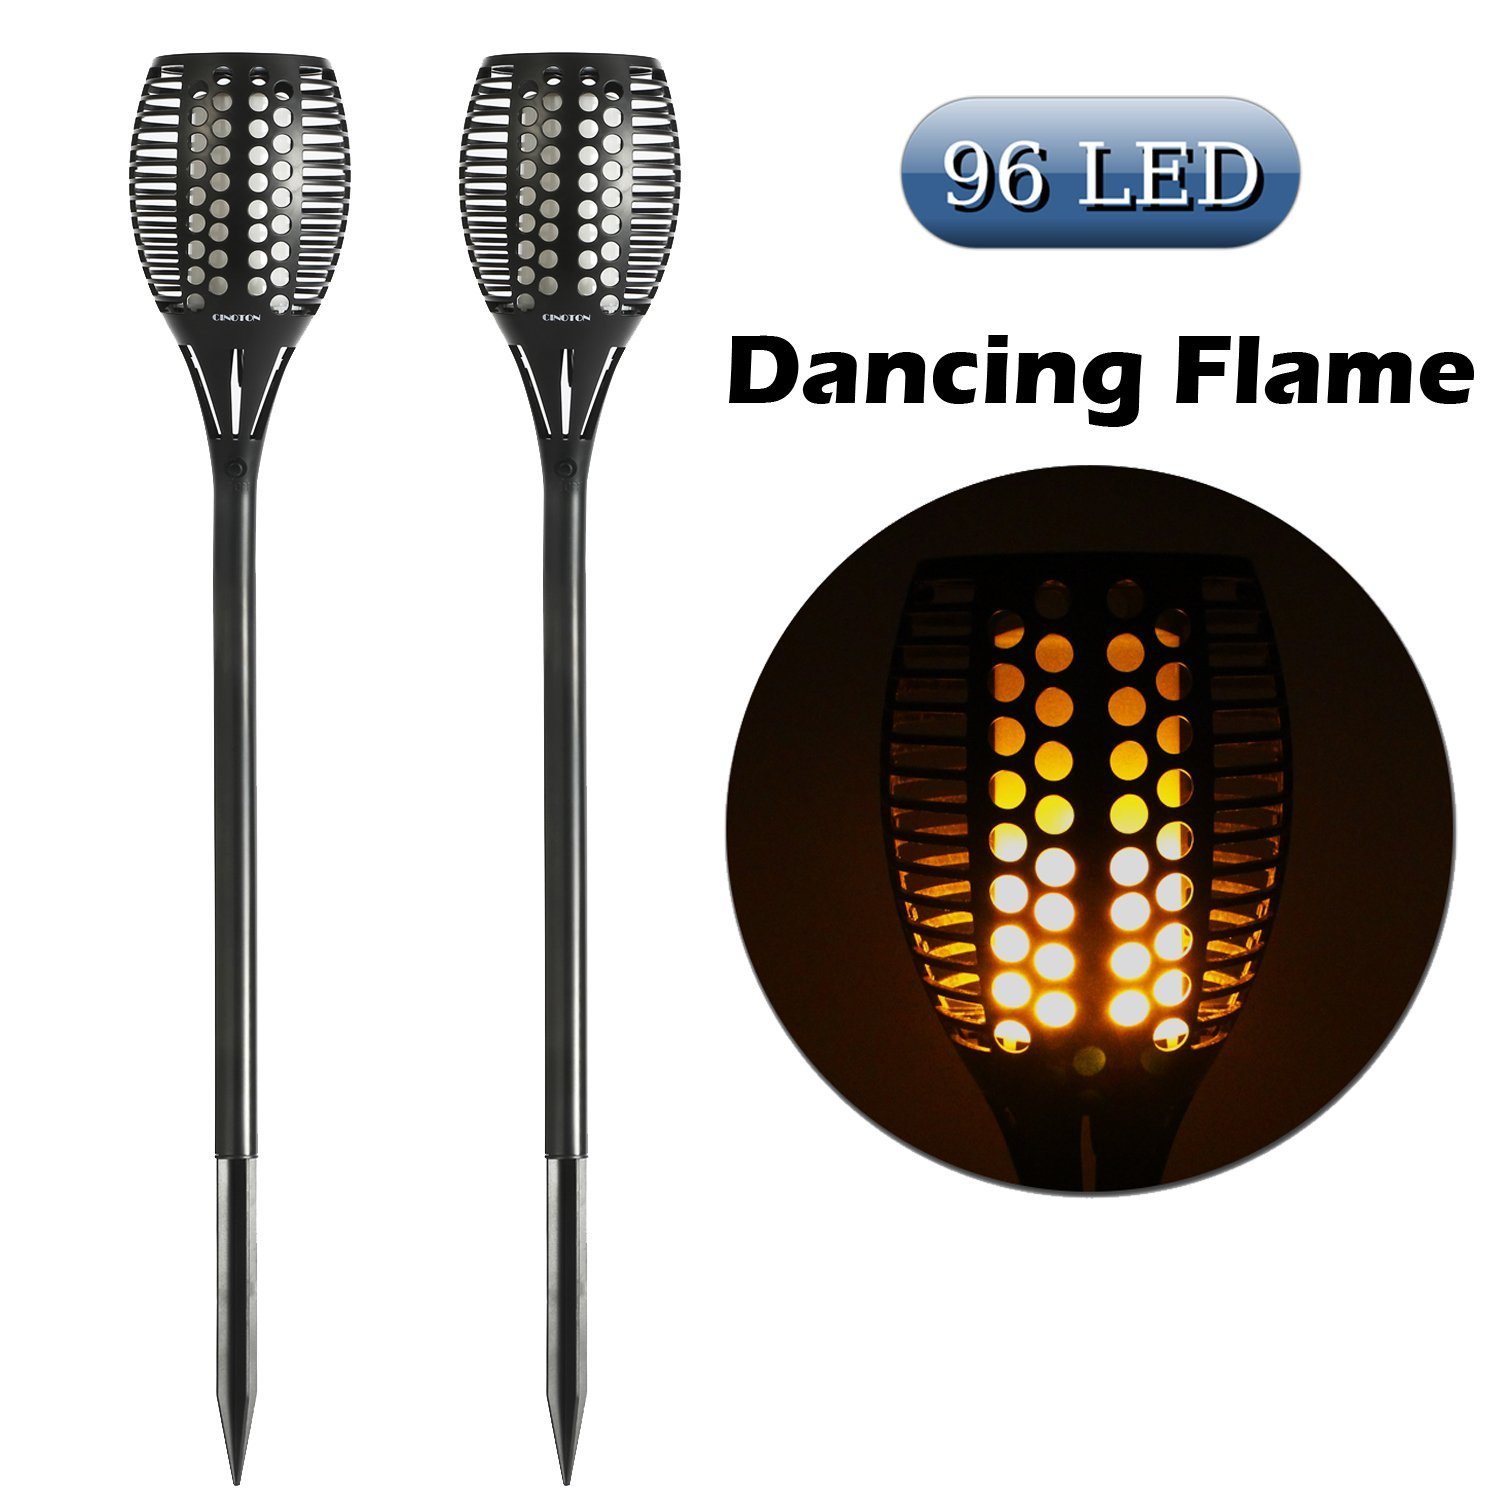 Cinoton solar path torches lights dancing flame lighting 96 led cinoton solar path torches lights dancing flame lighting 96 led flickering tiki torches outdoor waterproof2 pack walmart aloadofball Image collections